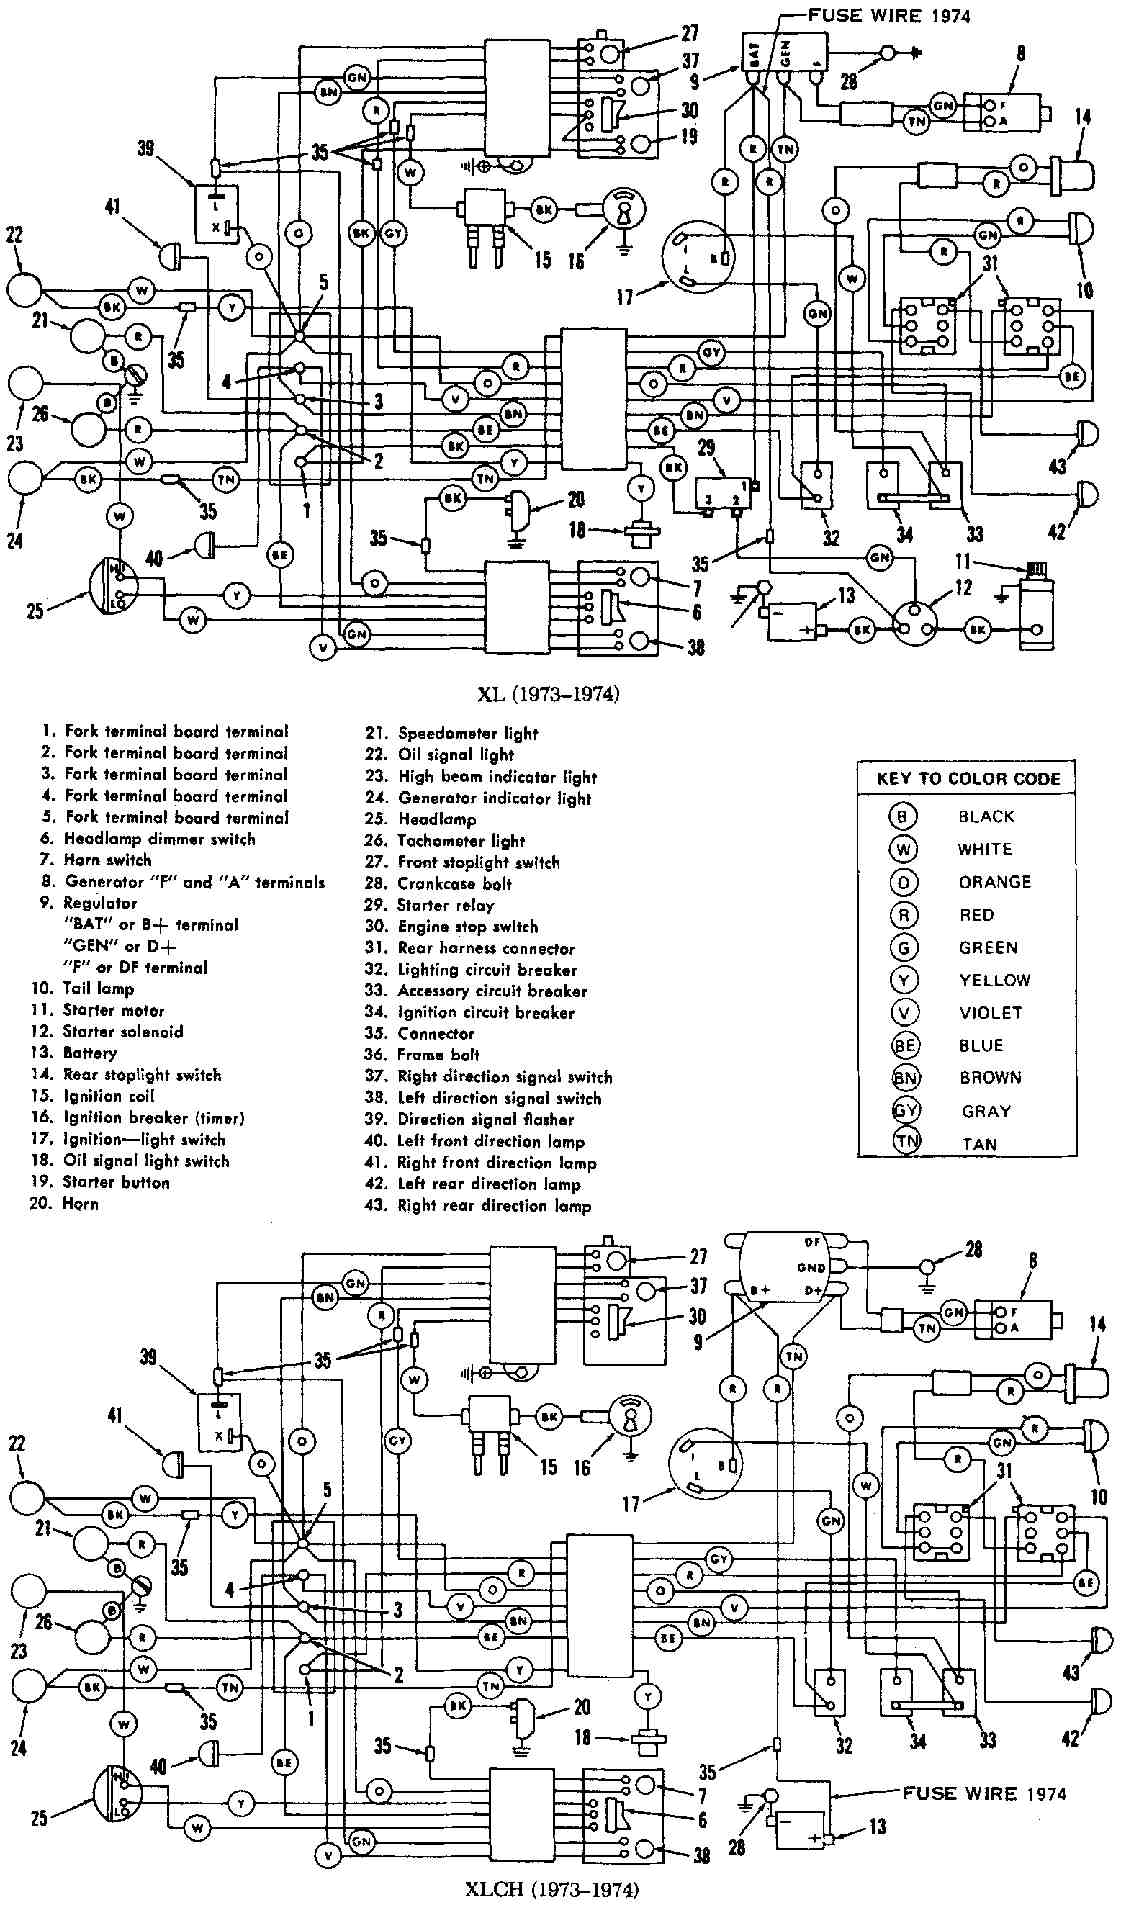 Harley Shovelhead Wiring Harness - Wiring Diagram G11 on